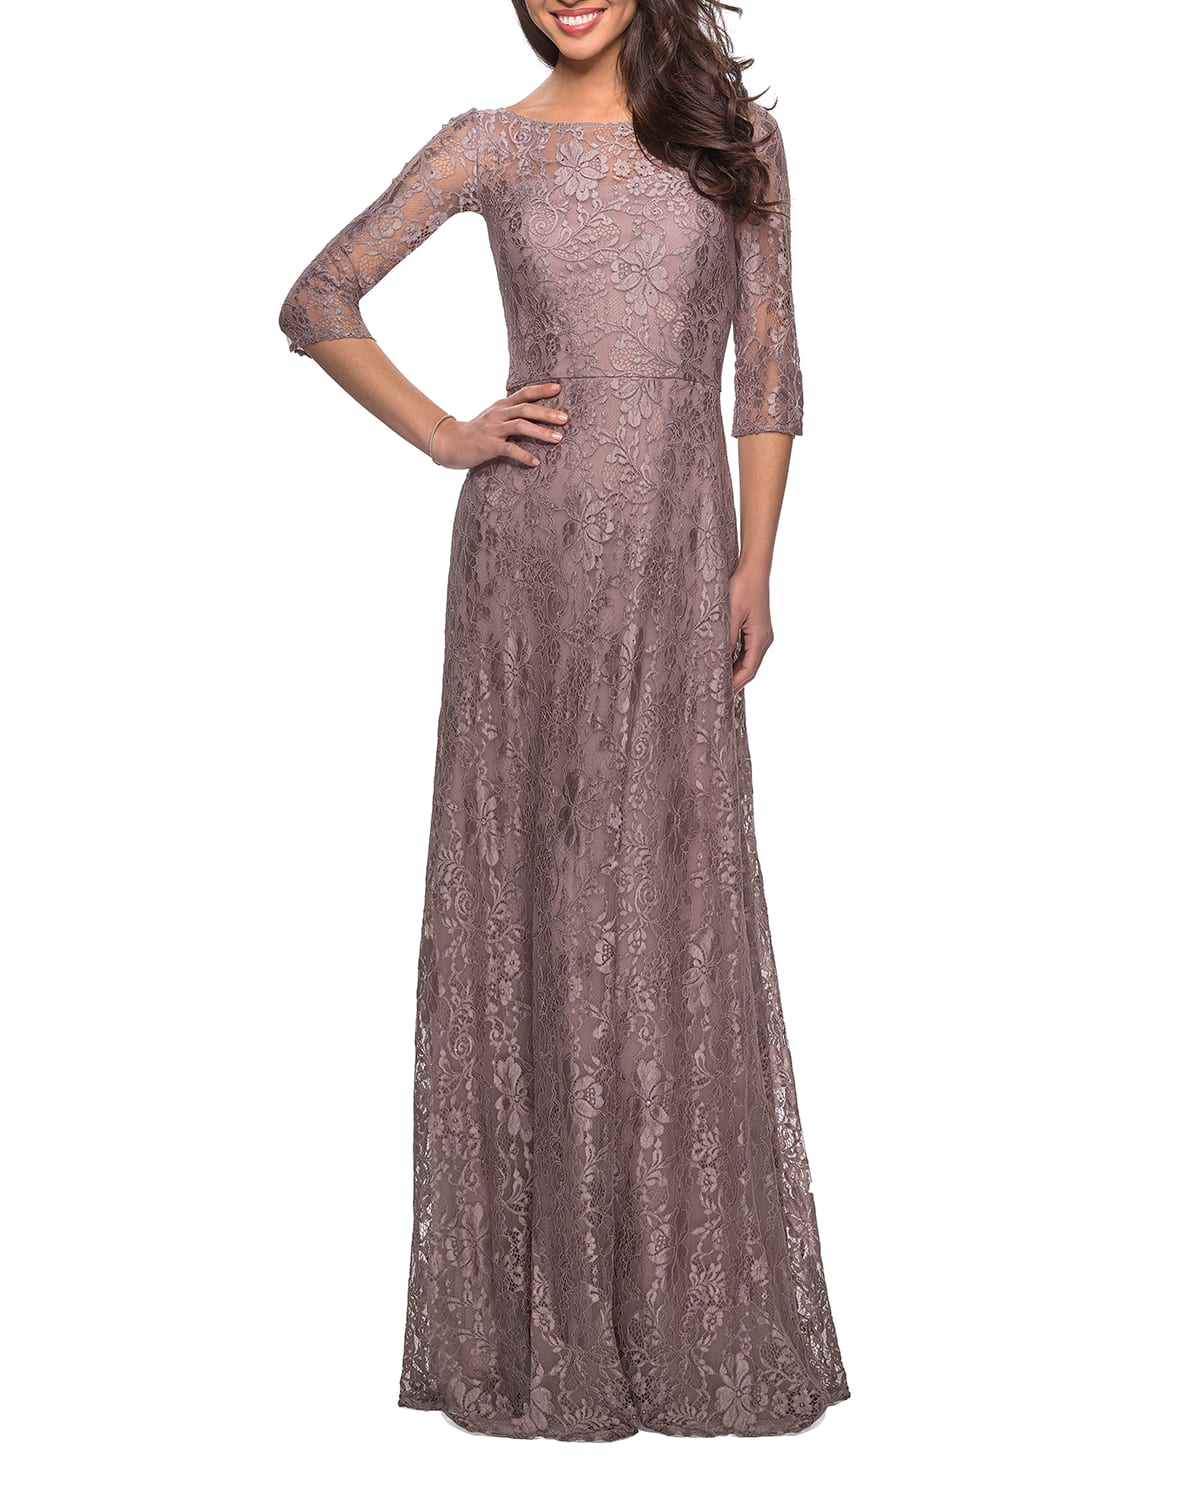 Floral Lace 3/4-Sleeve A-Line Gown